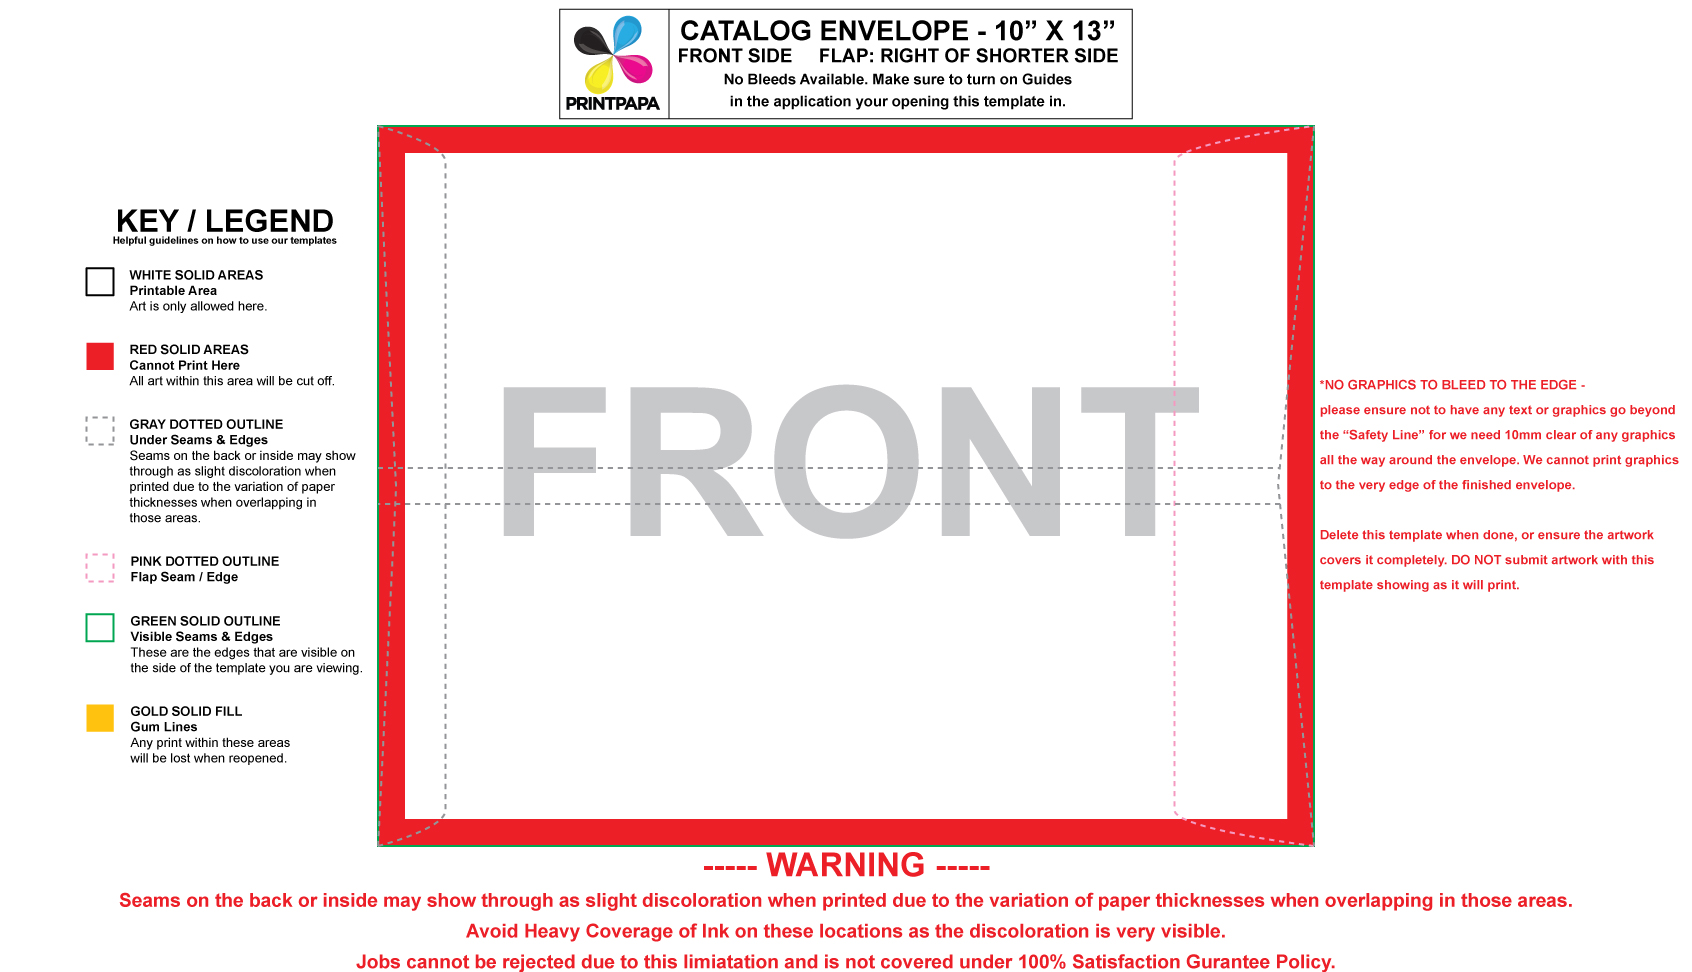 Find A Printing Template Printpapacom - 9x12 booklet envelope template